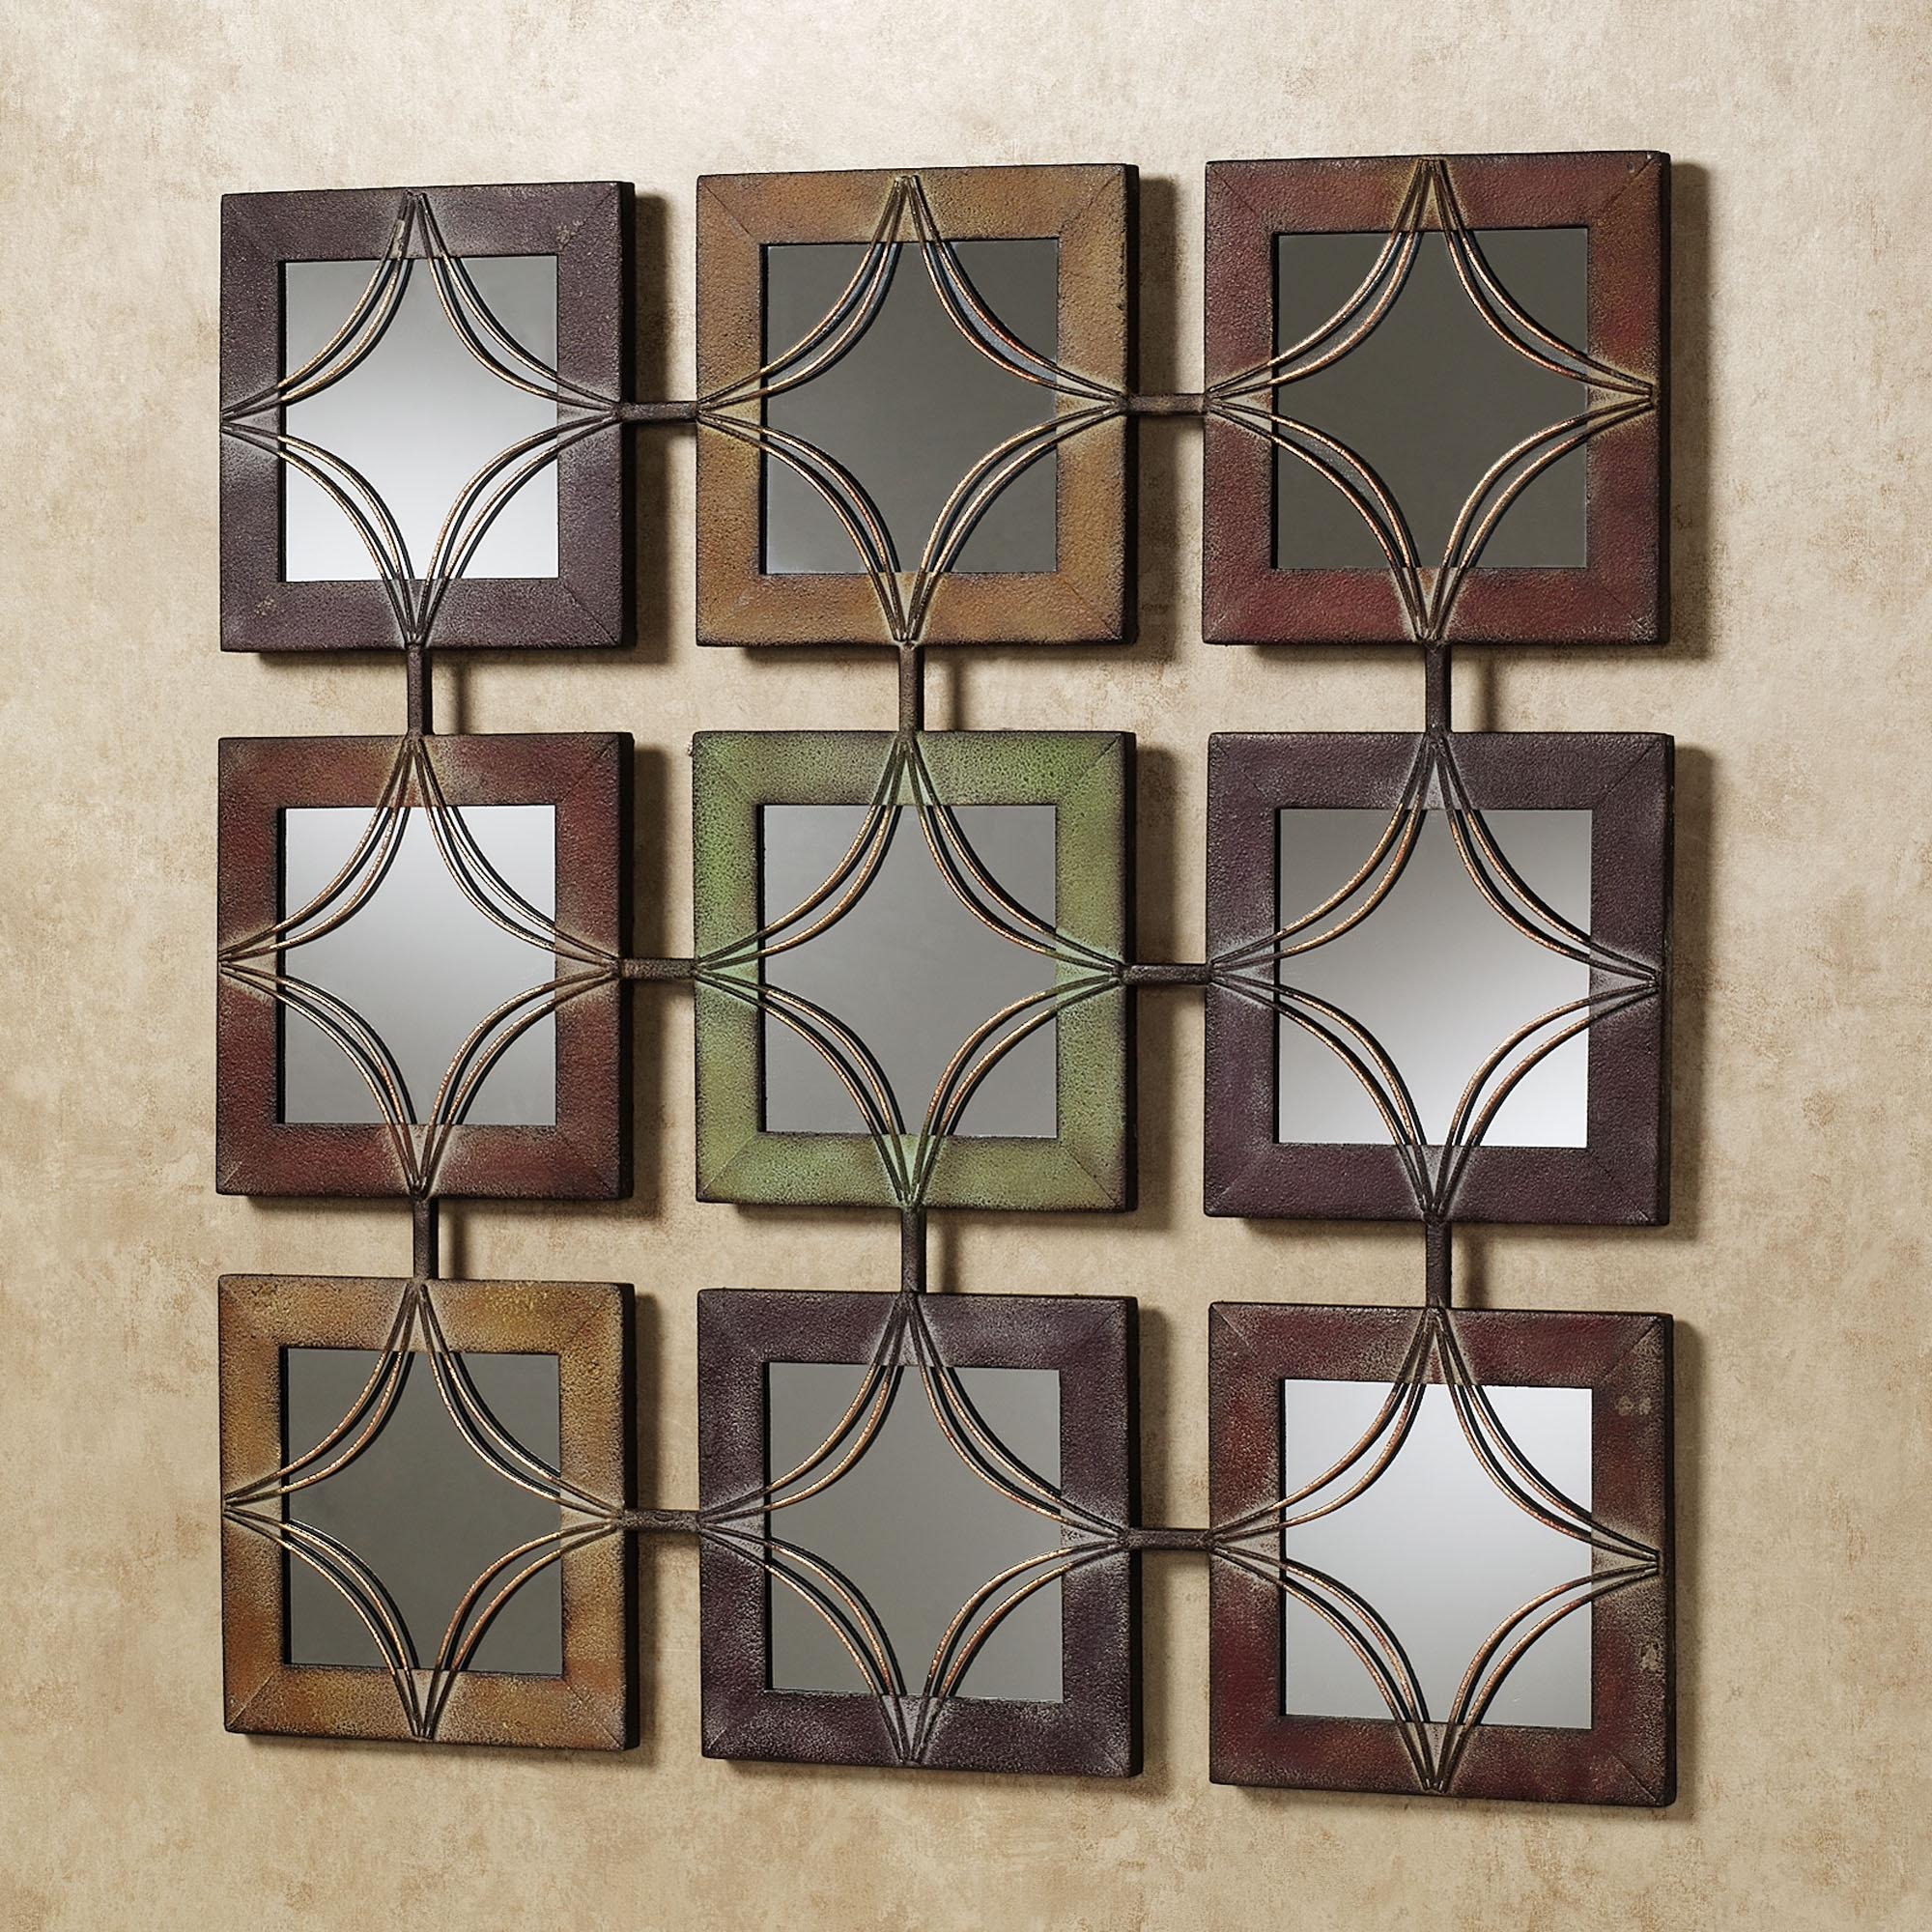 Matching Wall Art Inside Most Popular Wall Art Decor: Domini Metal Mirrored Wall Art Textured Square (View 3 of 15)